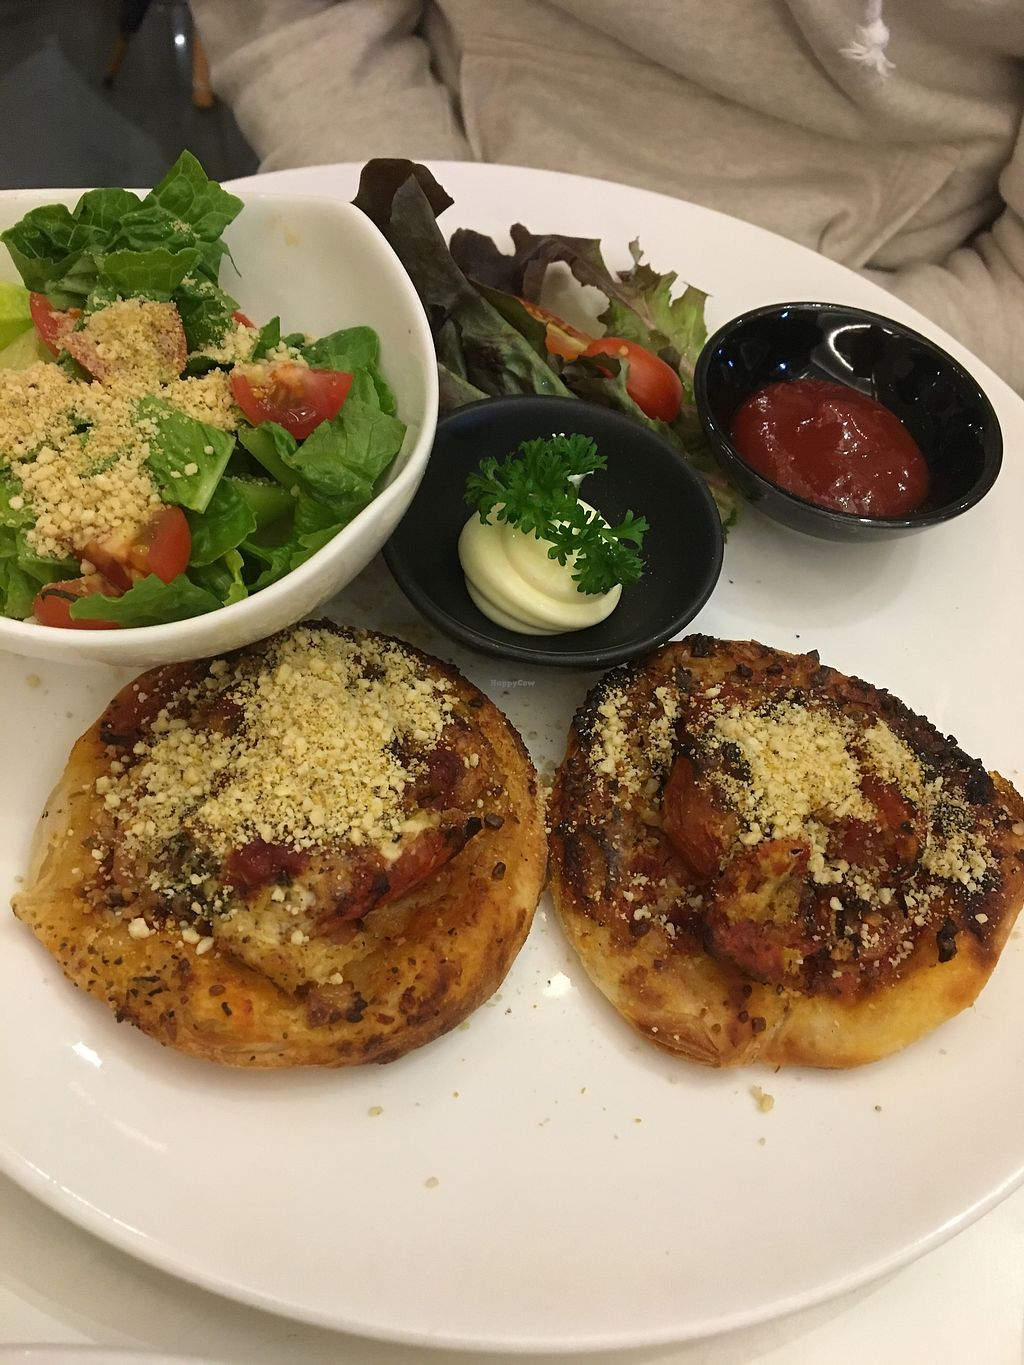 """Photo of Veganerie - Siam Paragon  by <a href=""""/members/profile/sanluvegan"""">sanluvegan</a> <br/>Roti pizza with caesar salad <br/> January 10, 2018  - <a href='/contact/abuse/image/83823/345054'>Report</a>"""